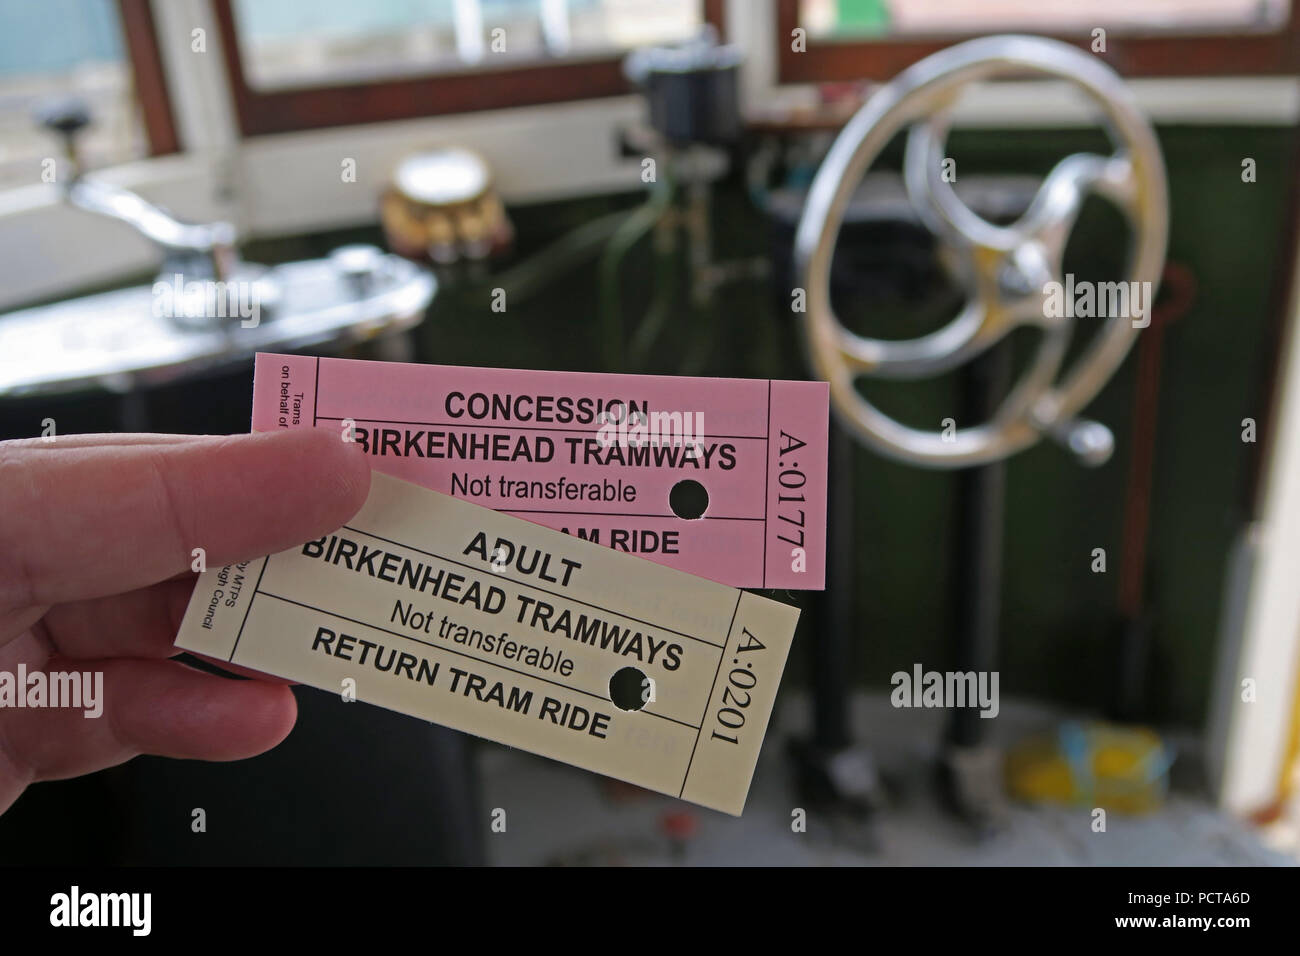 Tram tickets, being punched, Birkenhead Tramways, Merseyside, North West England, UK - Stock Image